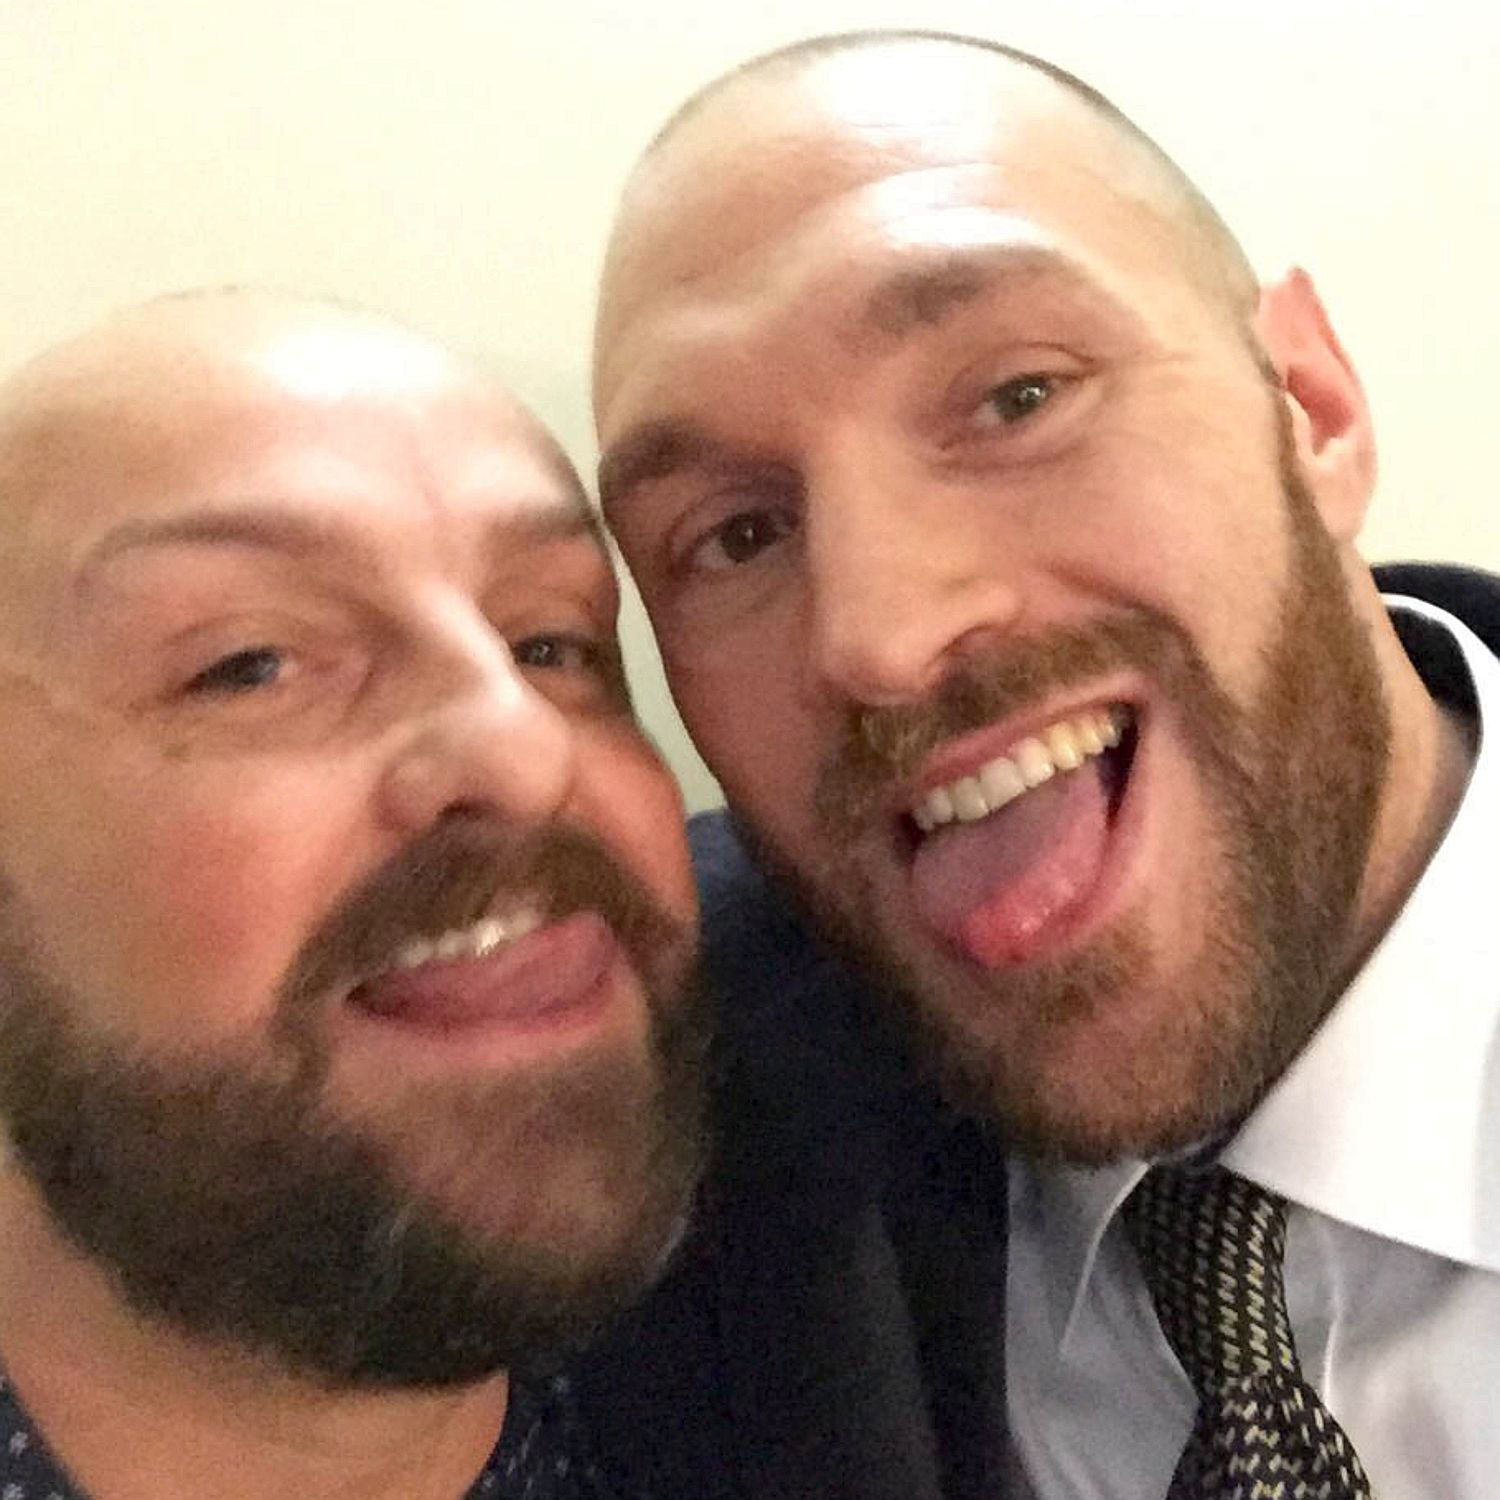 Homophobic Tyson Fury Pictured Kissing Gay Man In Bar Jim Clarke The Sun